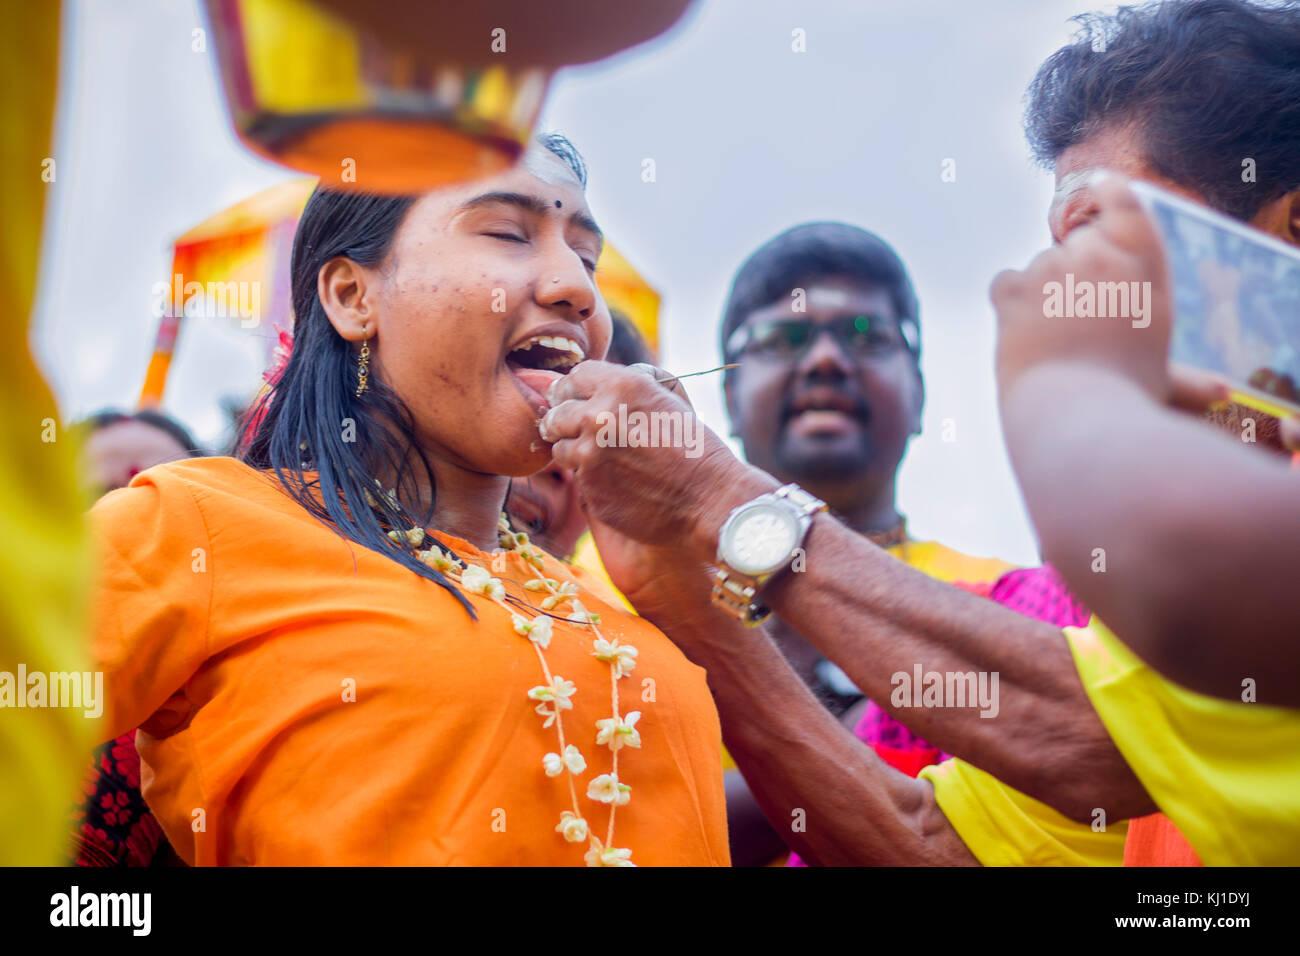 During Thaipusam festival in MAlaysia, Hindu Devotees preparing prayer blessing ceremony by piercing tounge to fulfill - Stock Image